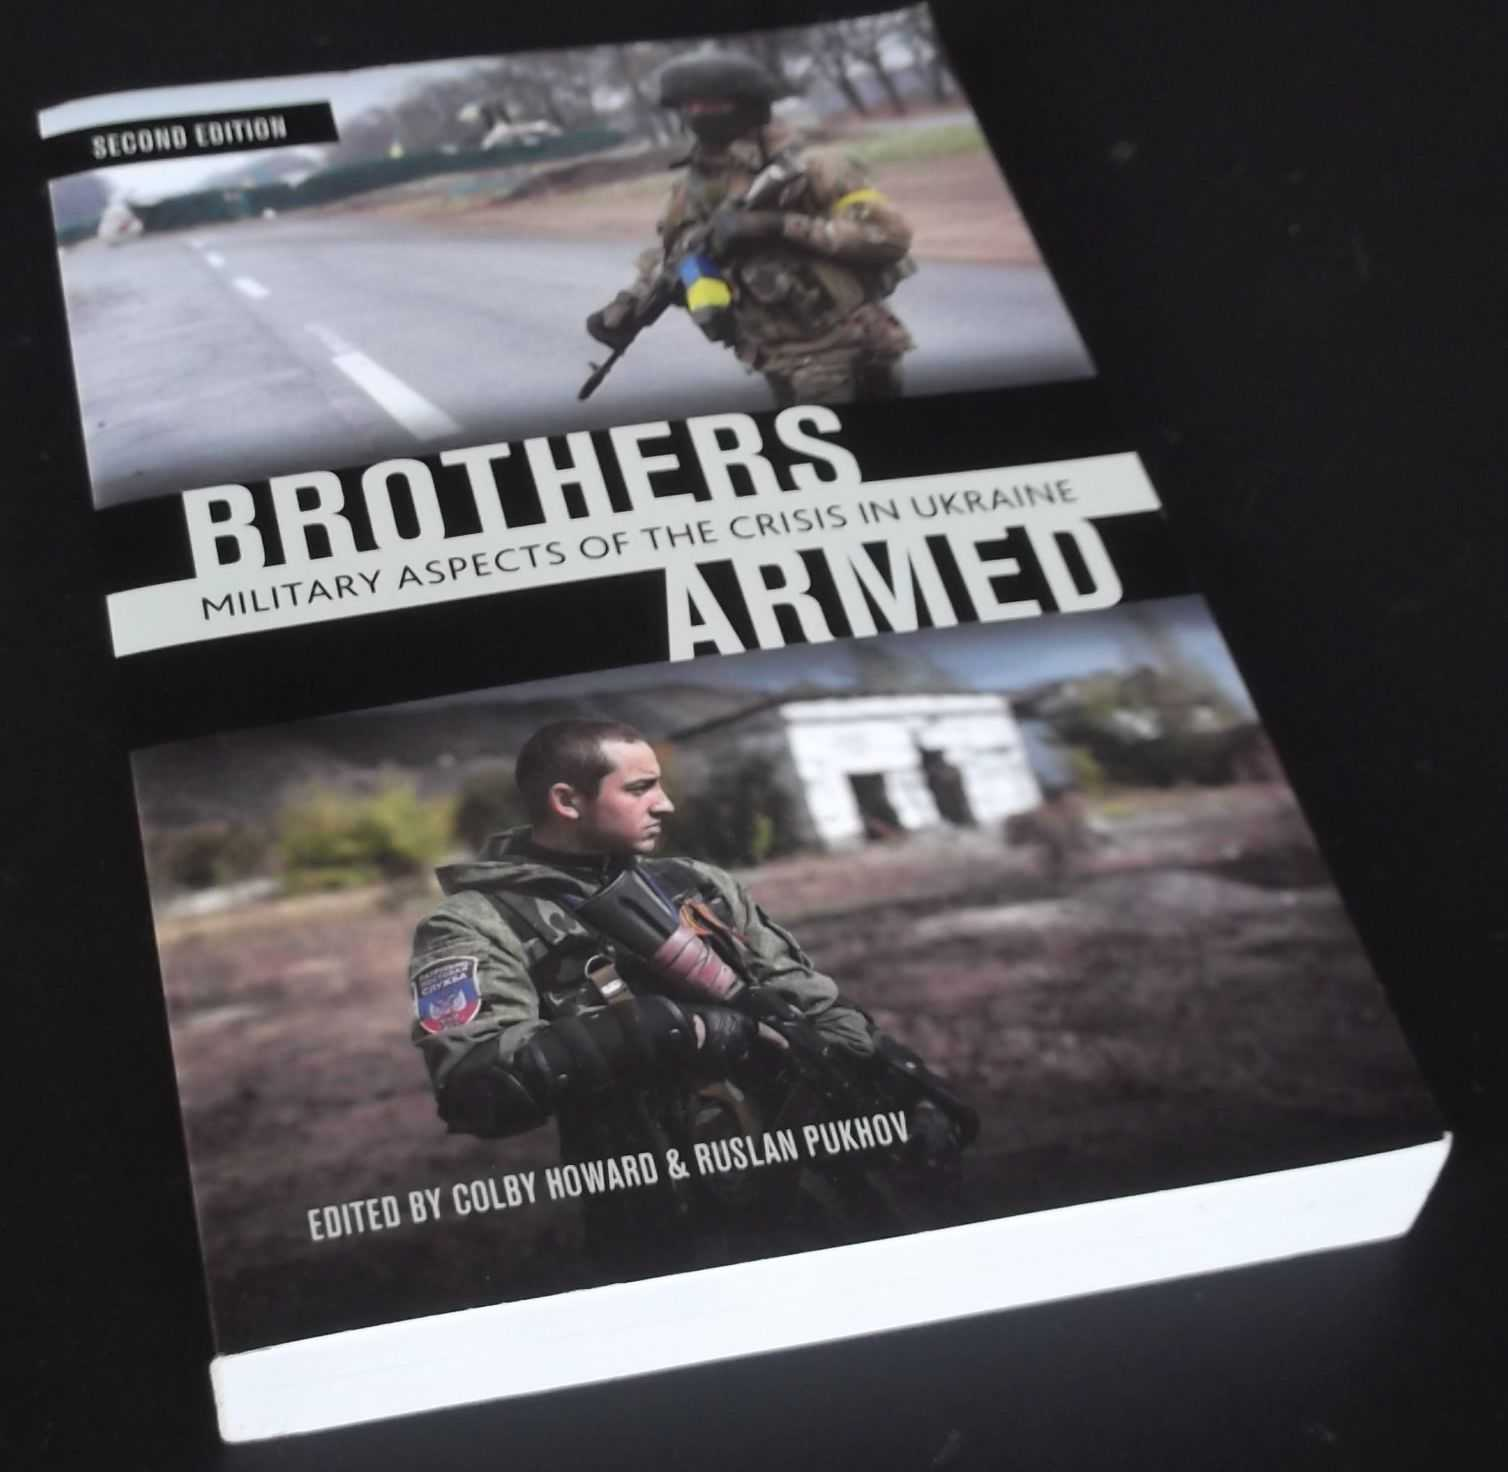 COLBY HOWARD (EDITOR) - Brothers Armed: Military Aspects of the Crisis in Ukraine